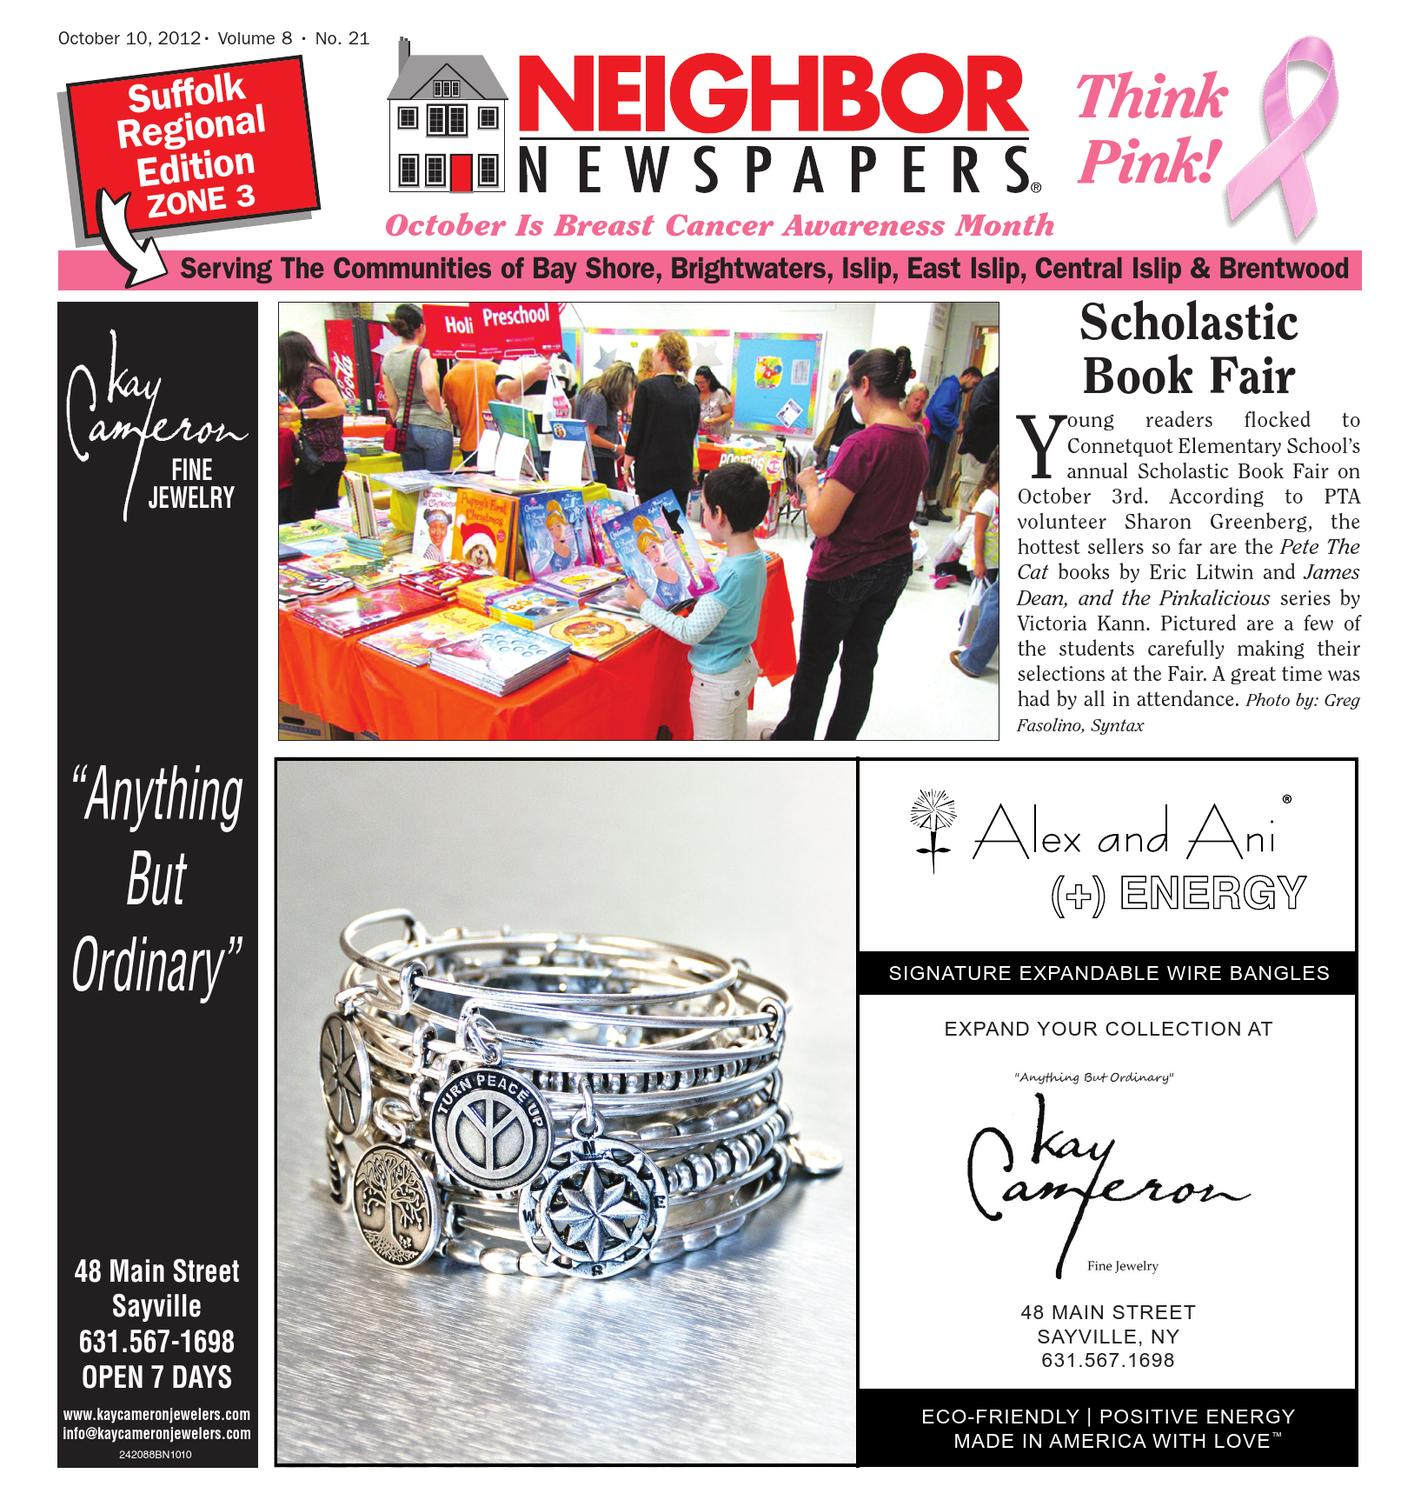 October 10, 2012 Suffolk Zone 3 by South Bay's Neighbor Newspapers - issuu